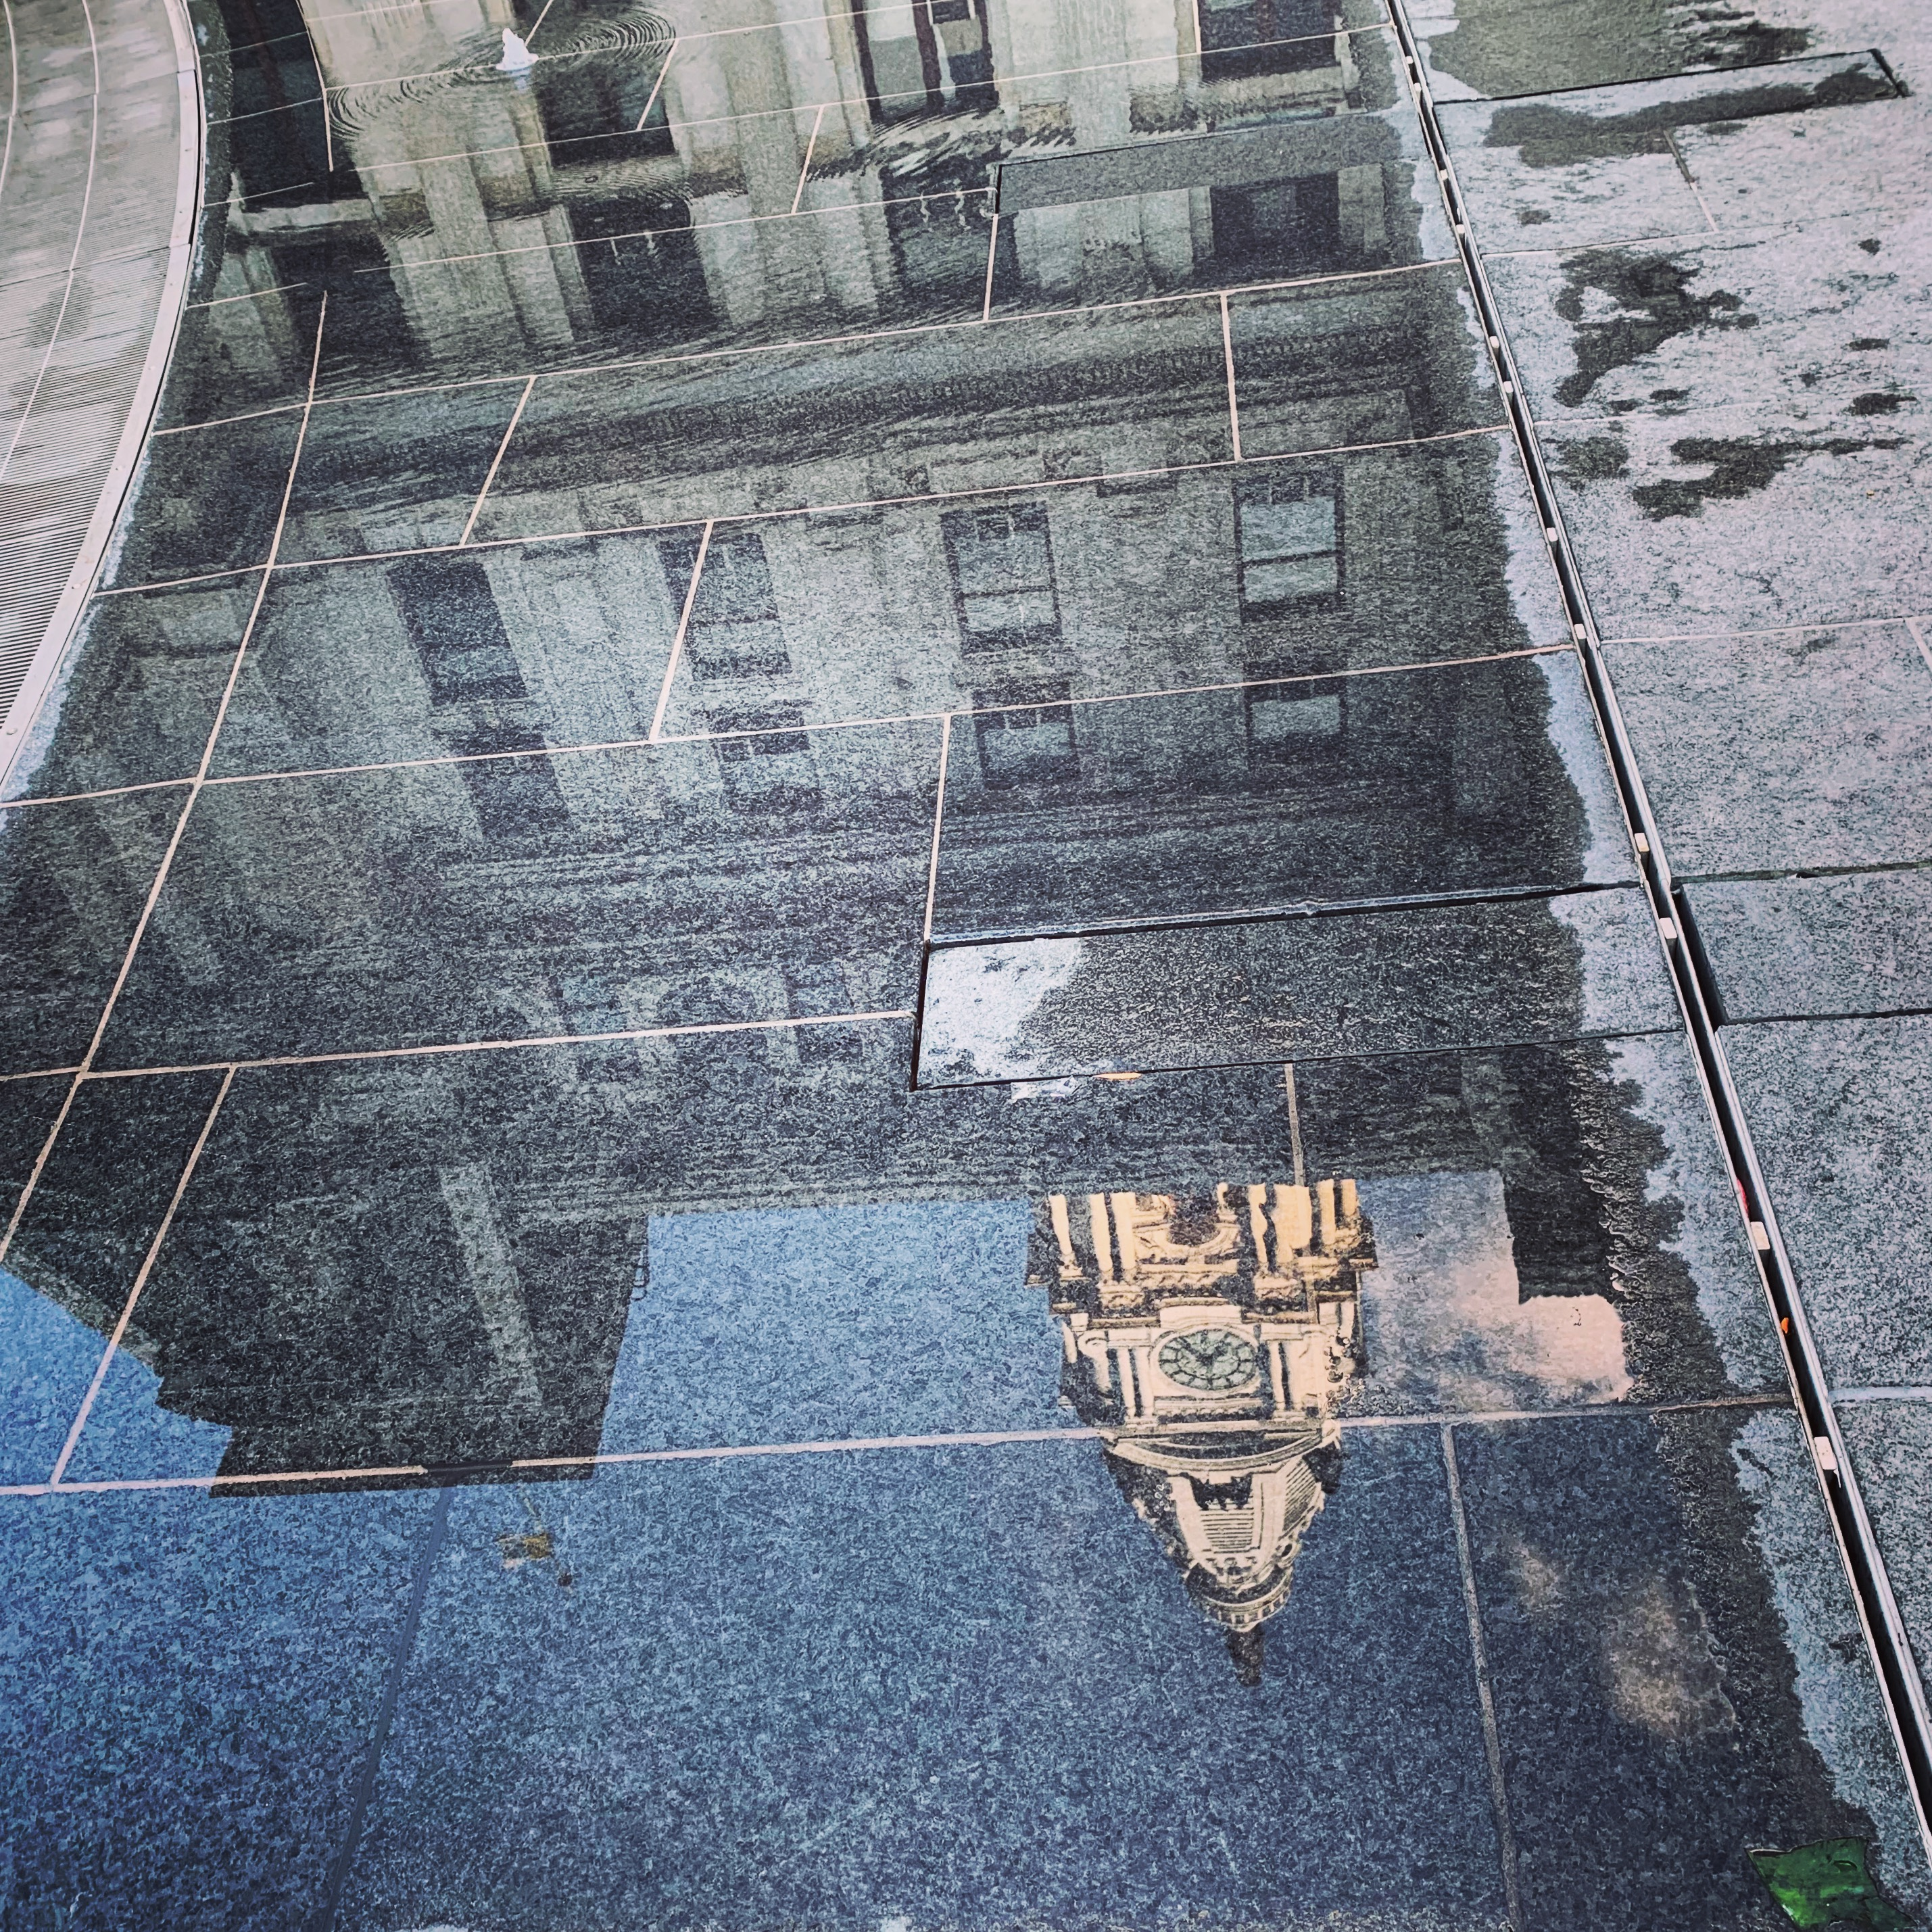 City Hall Reflected in a puddle, Merril D. Smith, Philadelphia 2019